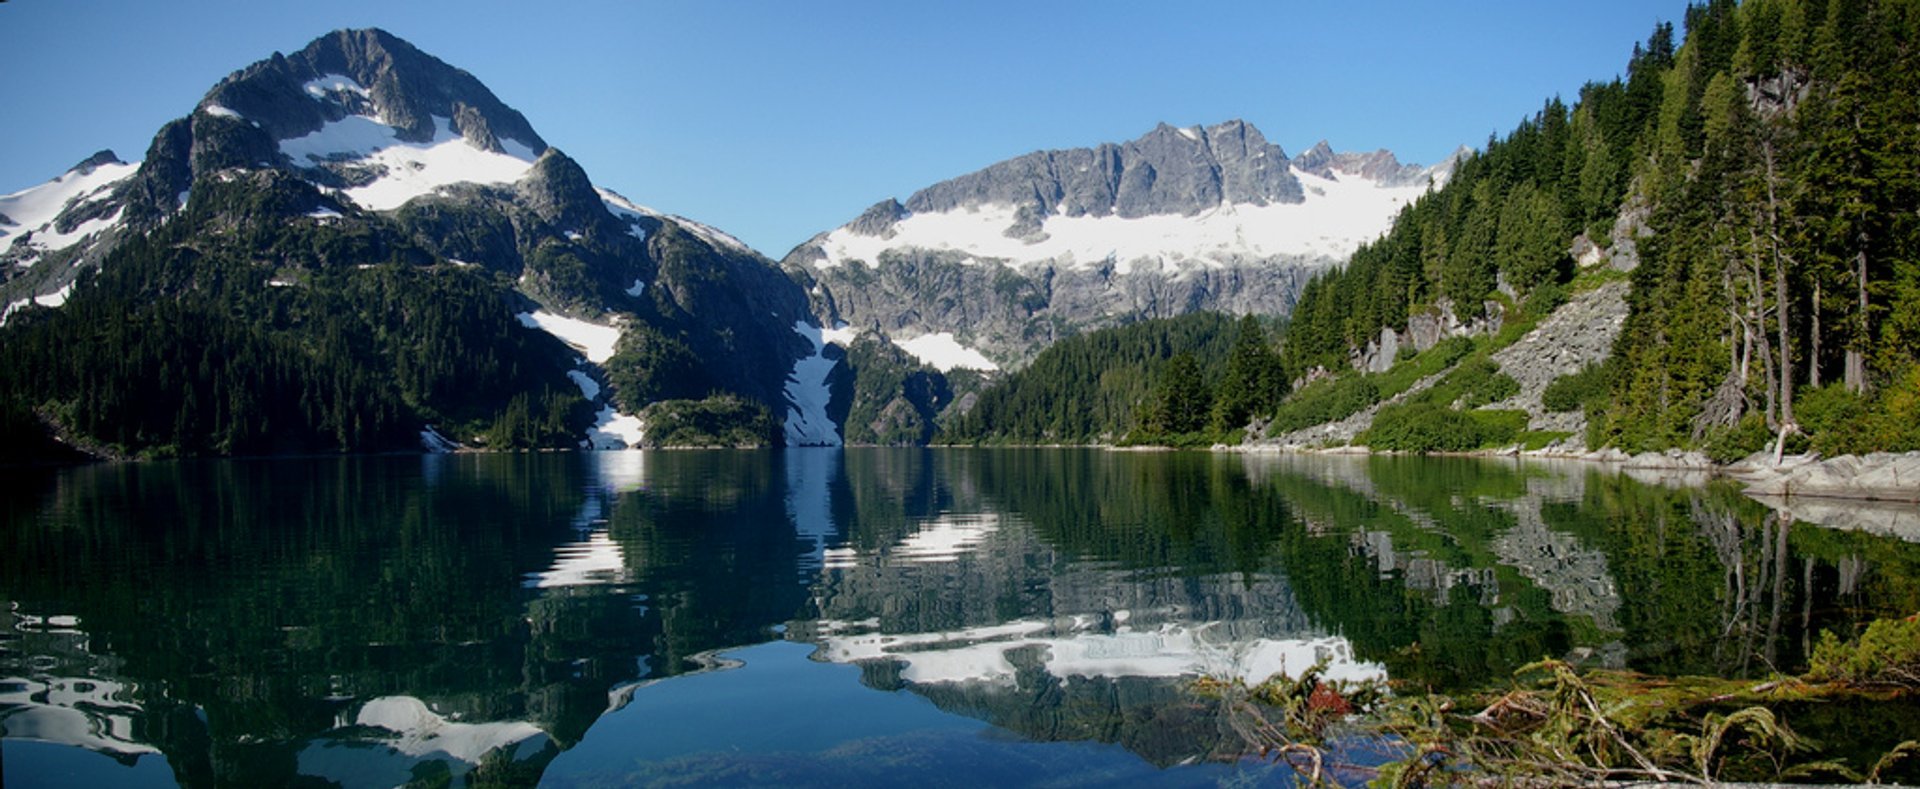 Lake Lovely Water in British Columbia 2020 - Best Time